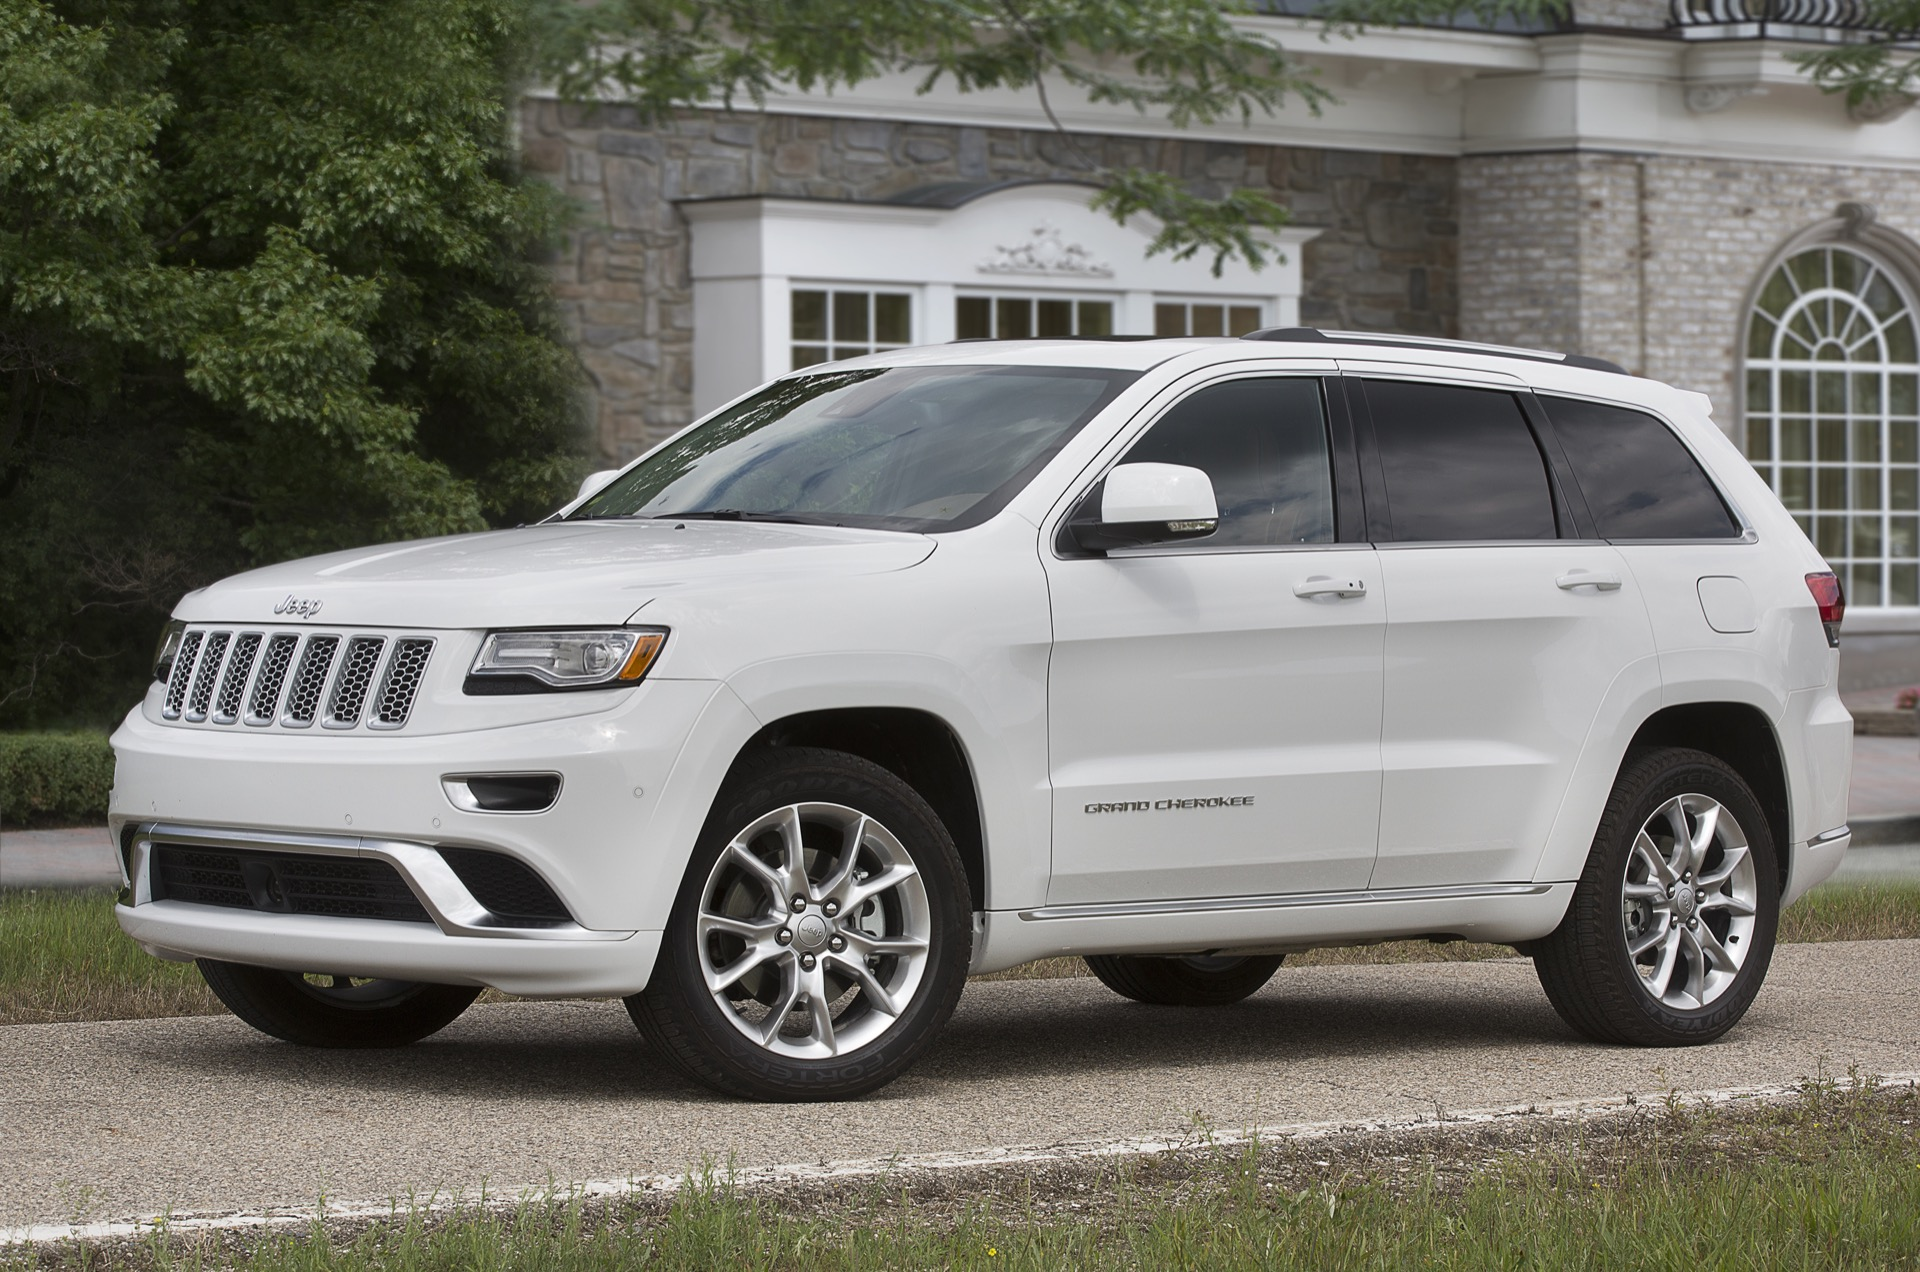 new and used jeep grand cherokee prices photos reviews specs the car connection. Black Bedroom Furniture Sets. Home Design Ideas